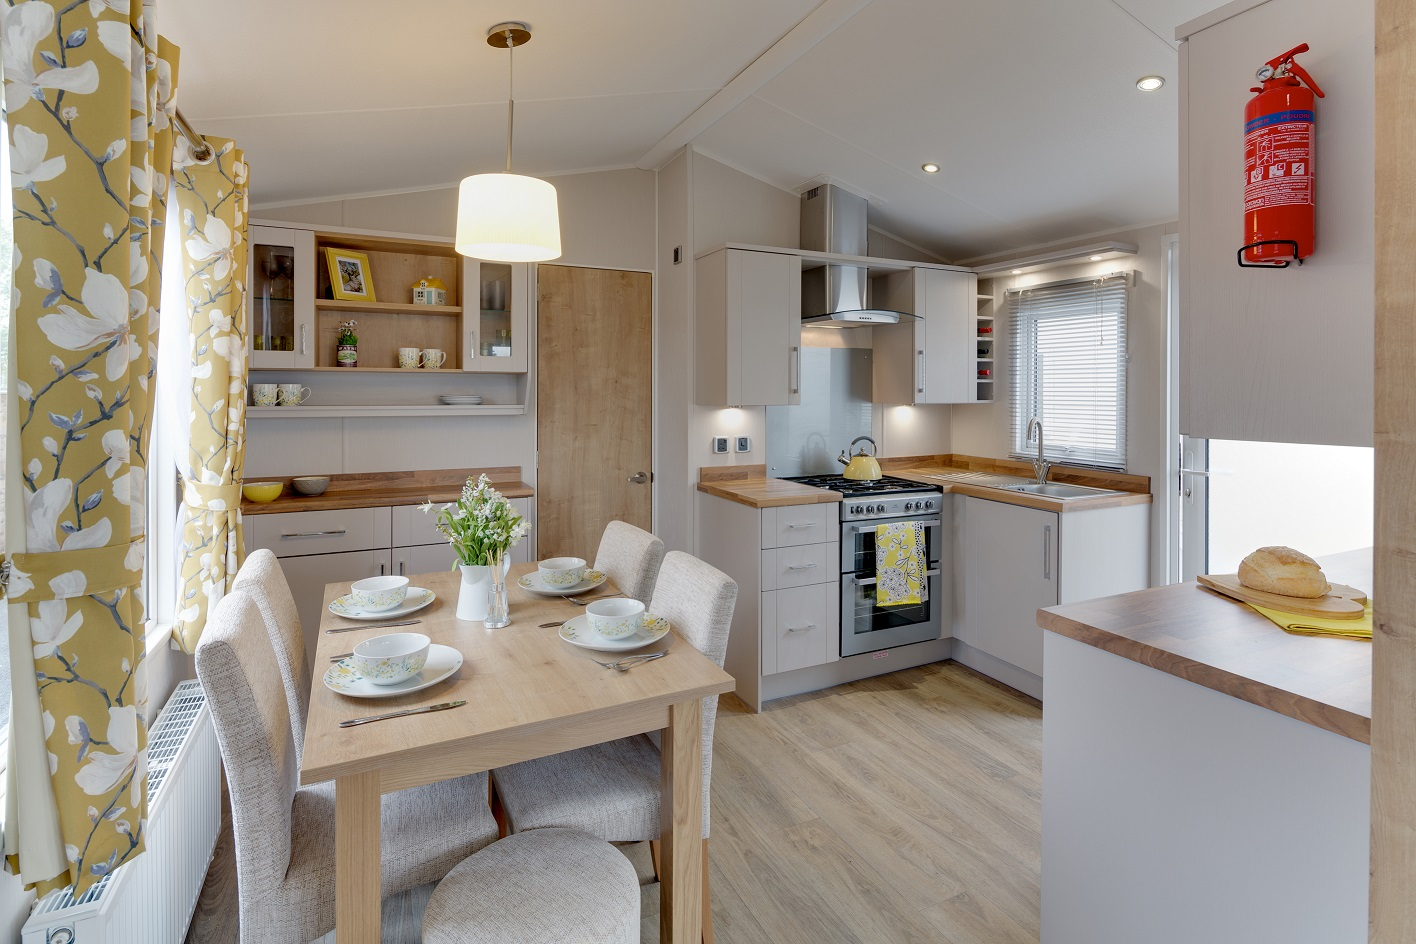 Willerby Winchester: Static Caravans and Holiday Homes for Sale on Caravan Parks, Nidderdale, North Yorkshire Large Image 3